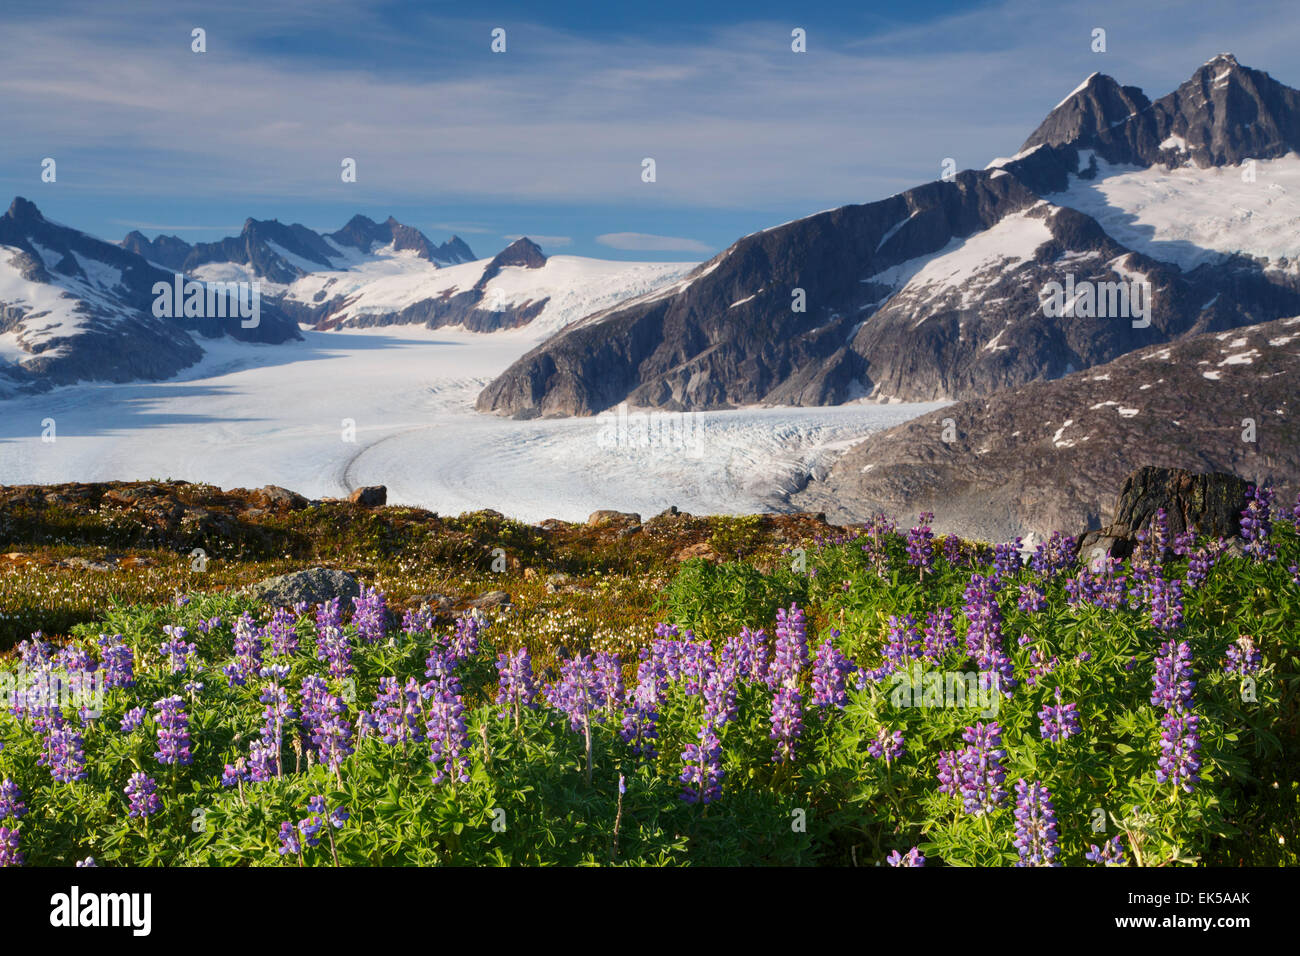 From Mount Stroller White above the Mendenhall Glacier, Tongass National Forest, Alaska. - Stock Image